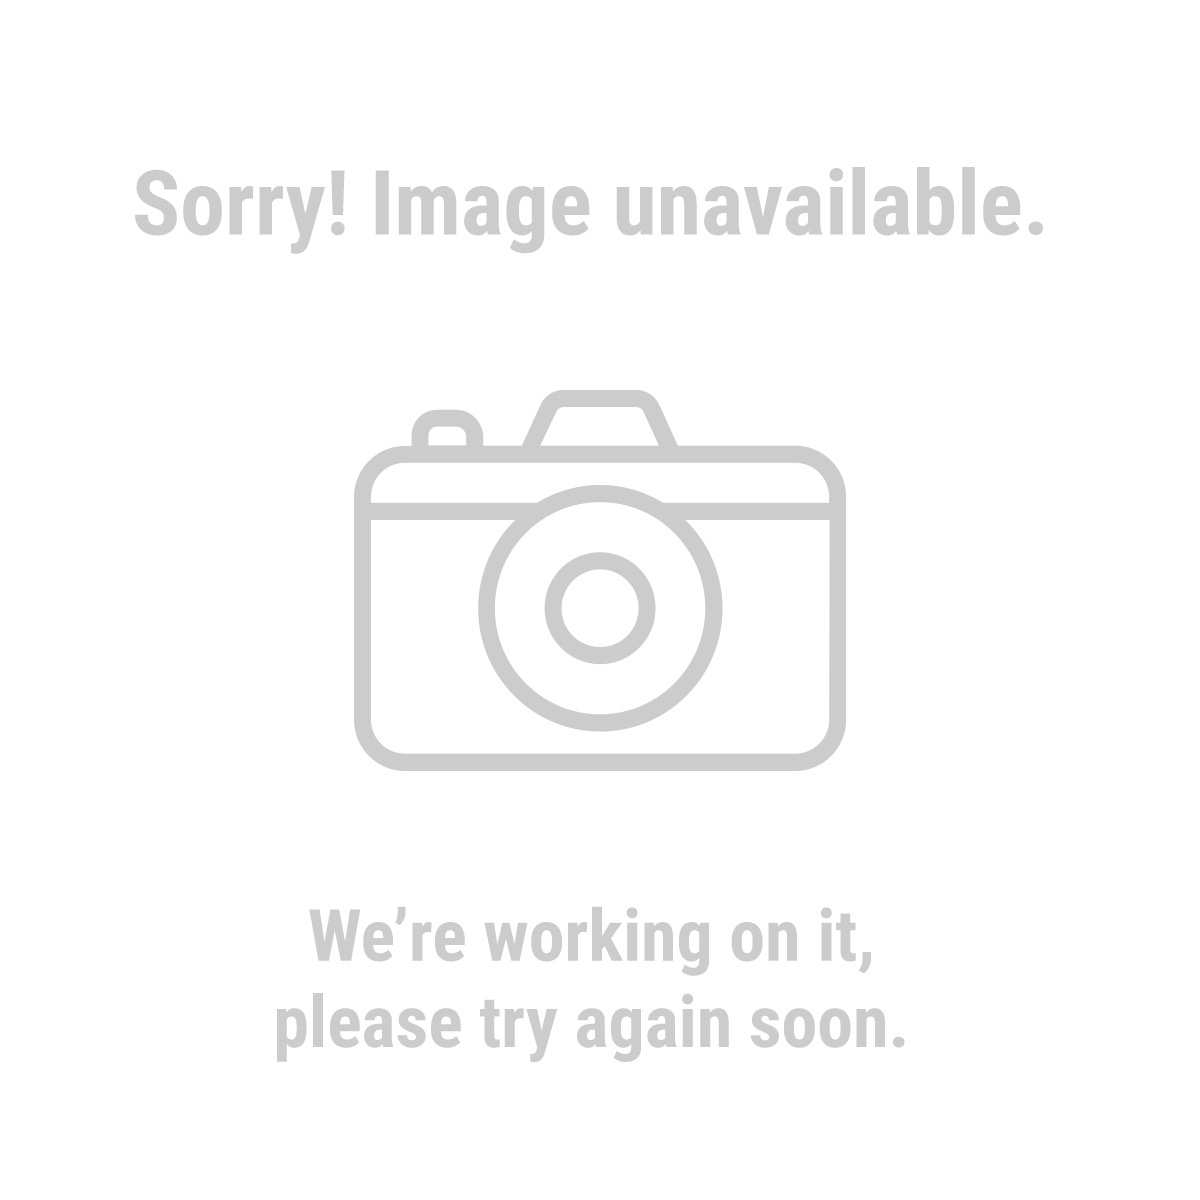 Vanguard 62916 50 Ft. x 10 Gauge Triple Tap Extension Cord